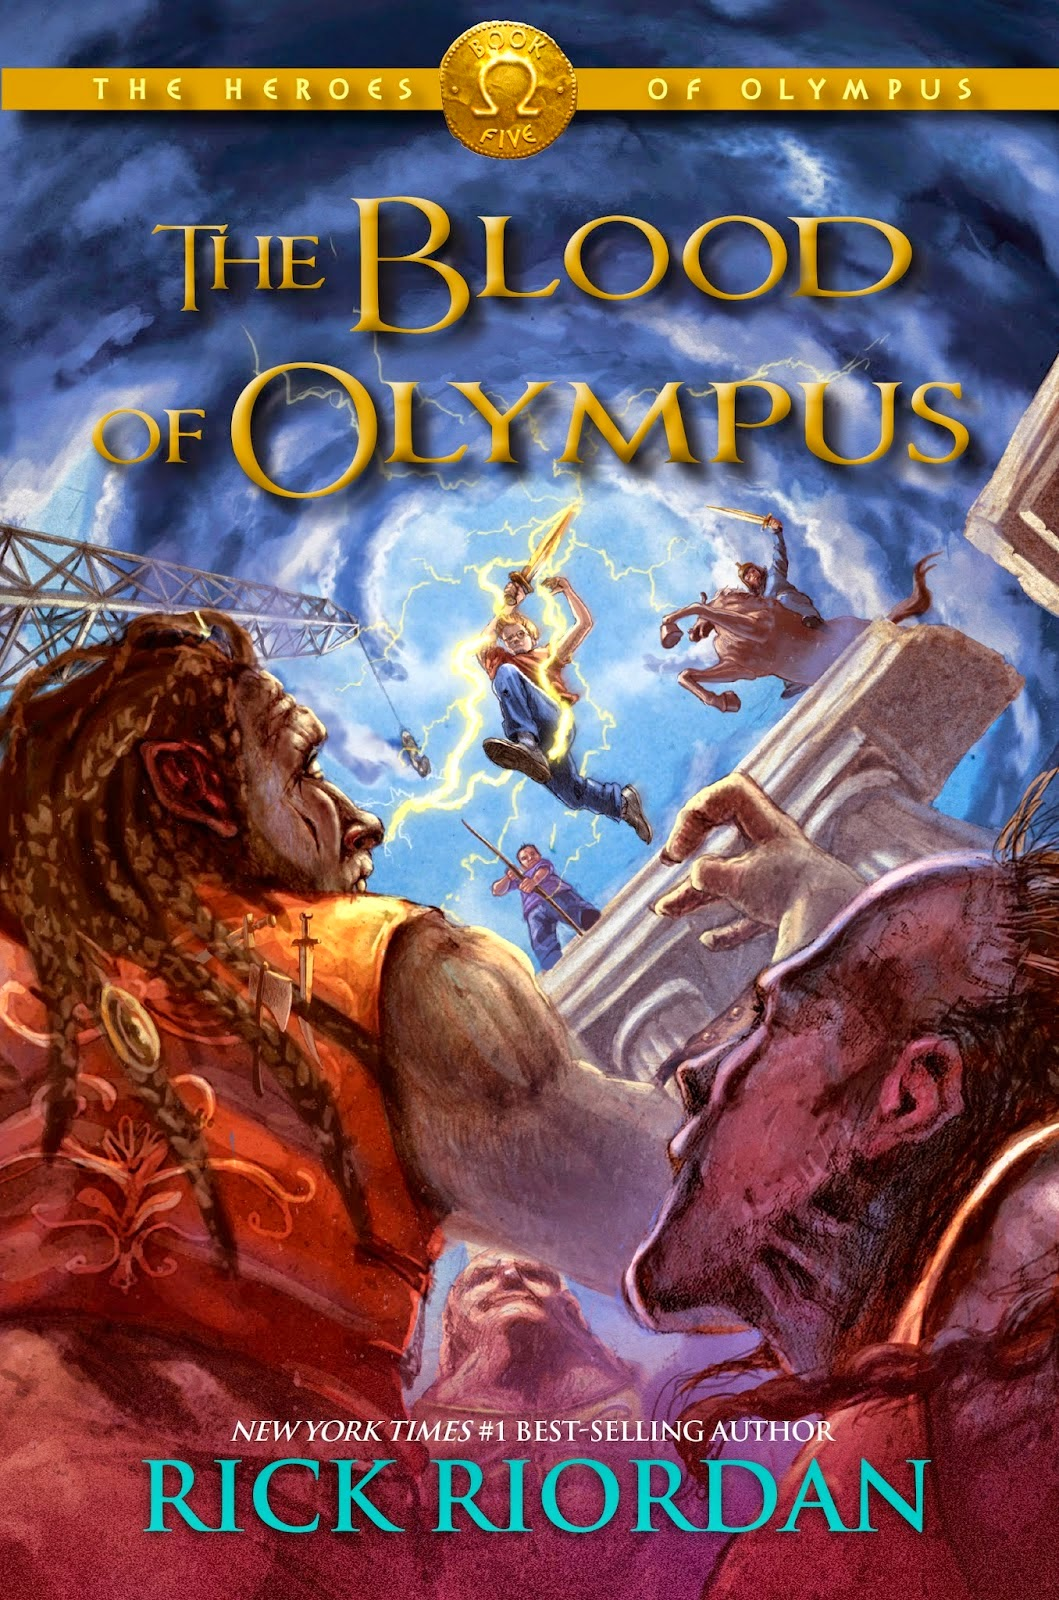 Cover of The Blood of Olympus by Rick Riordan